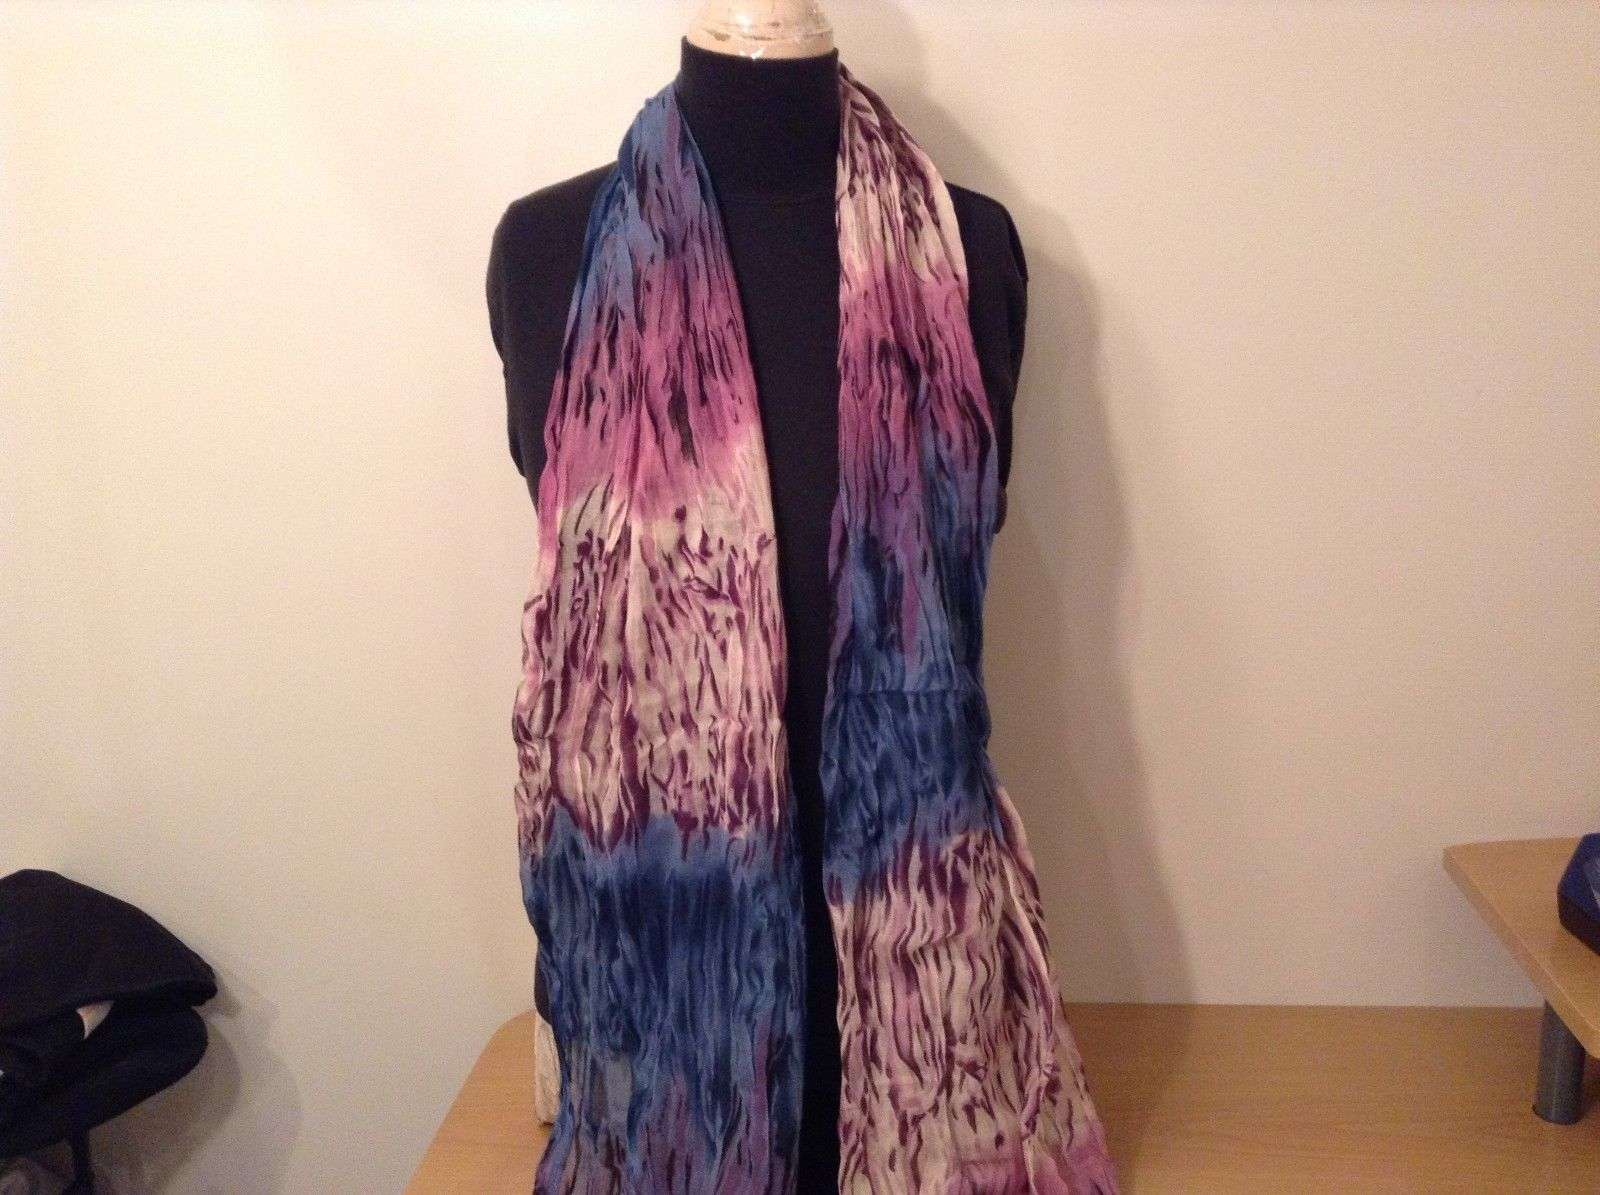 New fashion scarf shibori water color style in choice of color scheme